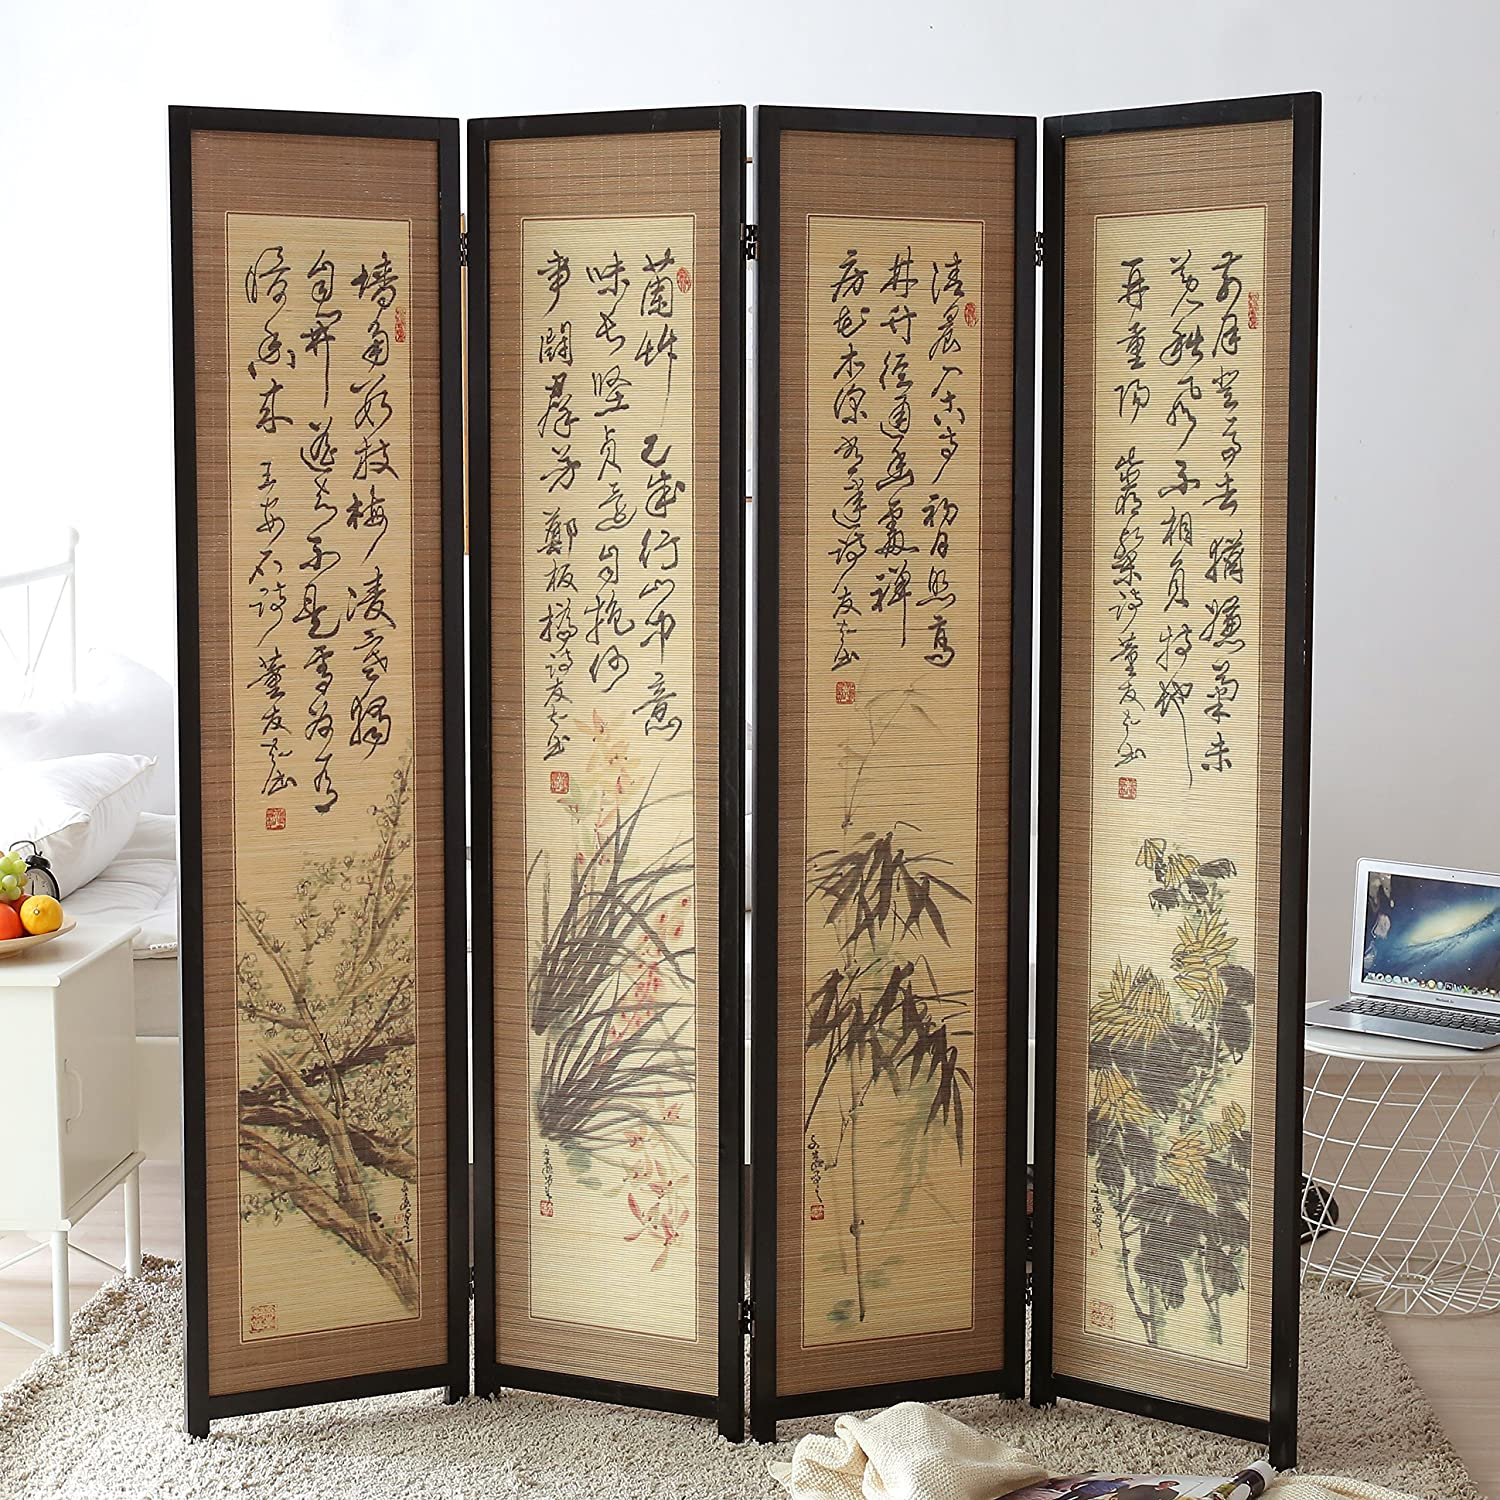 MyGift 4 Panel Japanese-Inspired Artwork Room Divider Folding Wood Privacy Partition with Dual Hinges